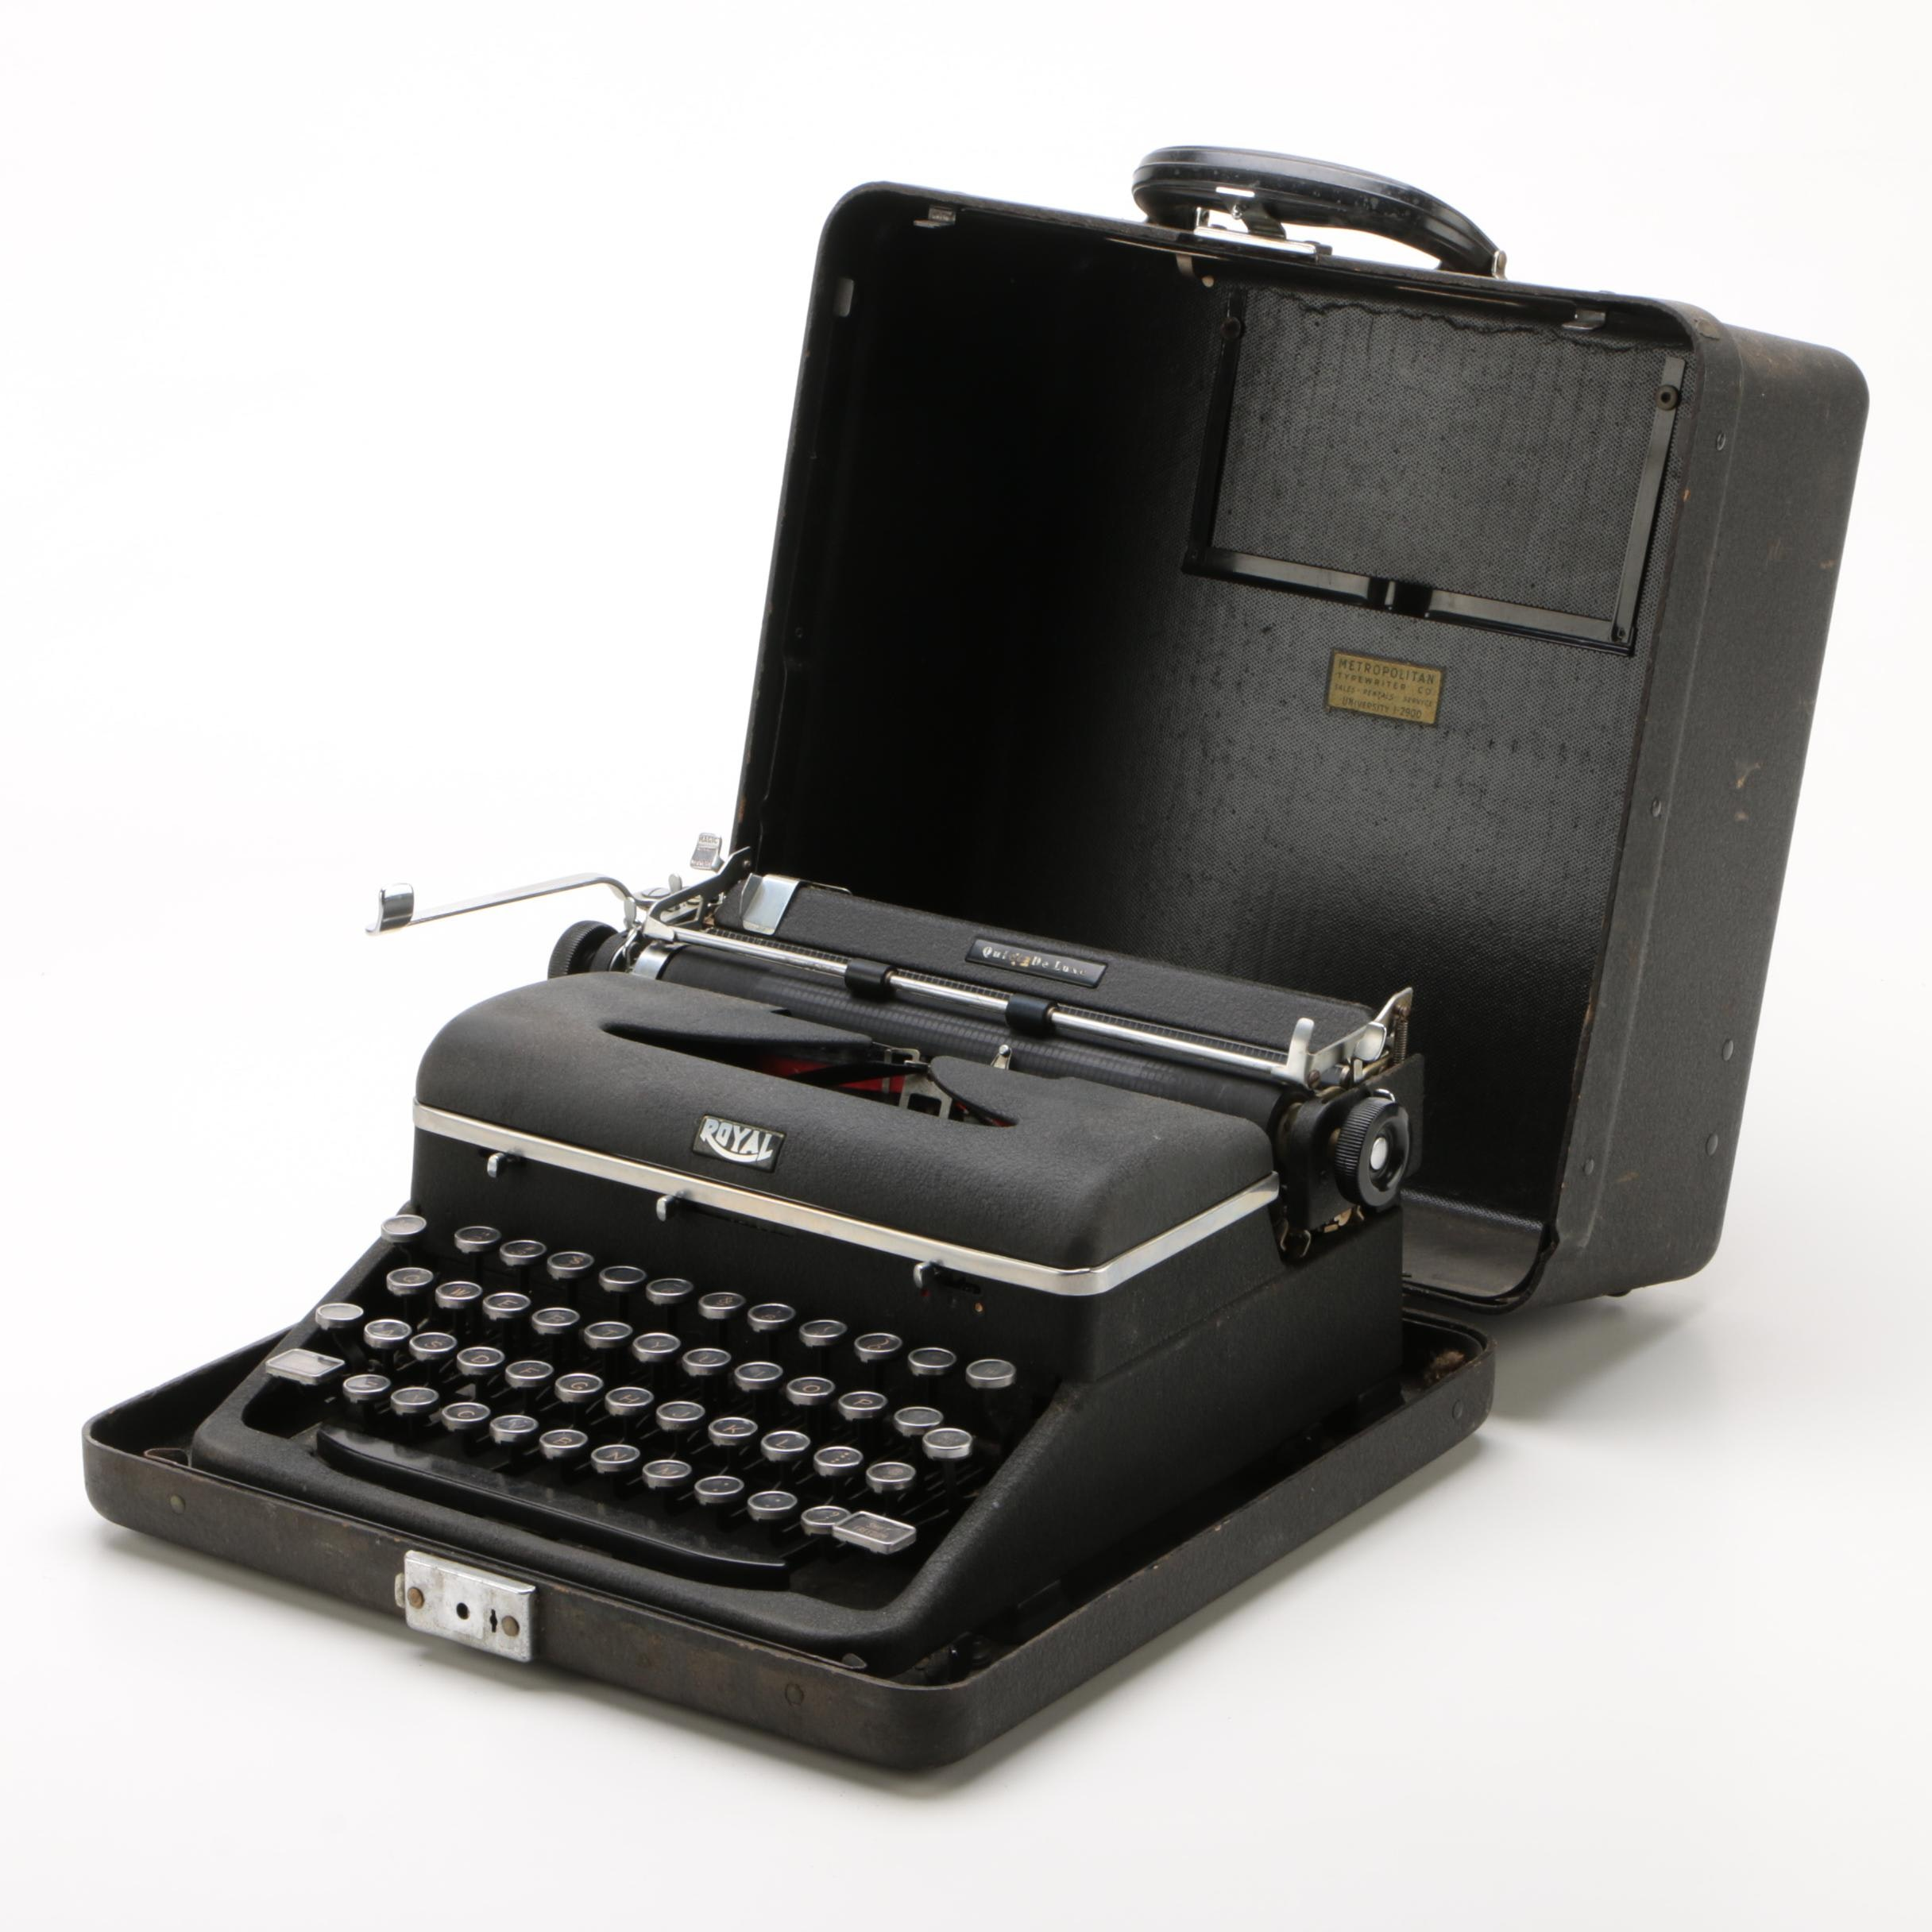 Royal Quiet DeLuxe Portable Typewriter with Case, 1940s